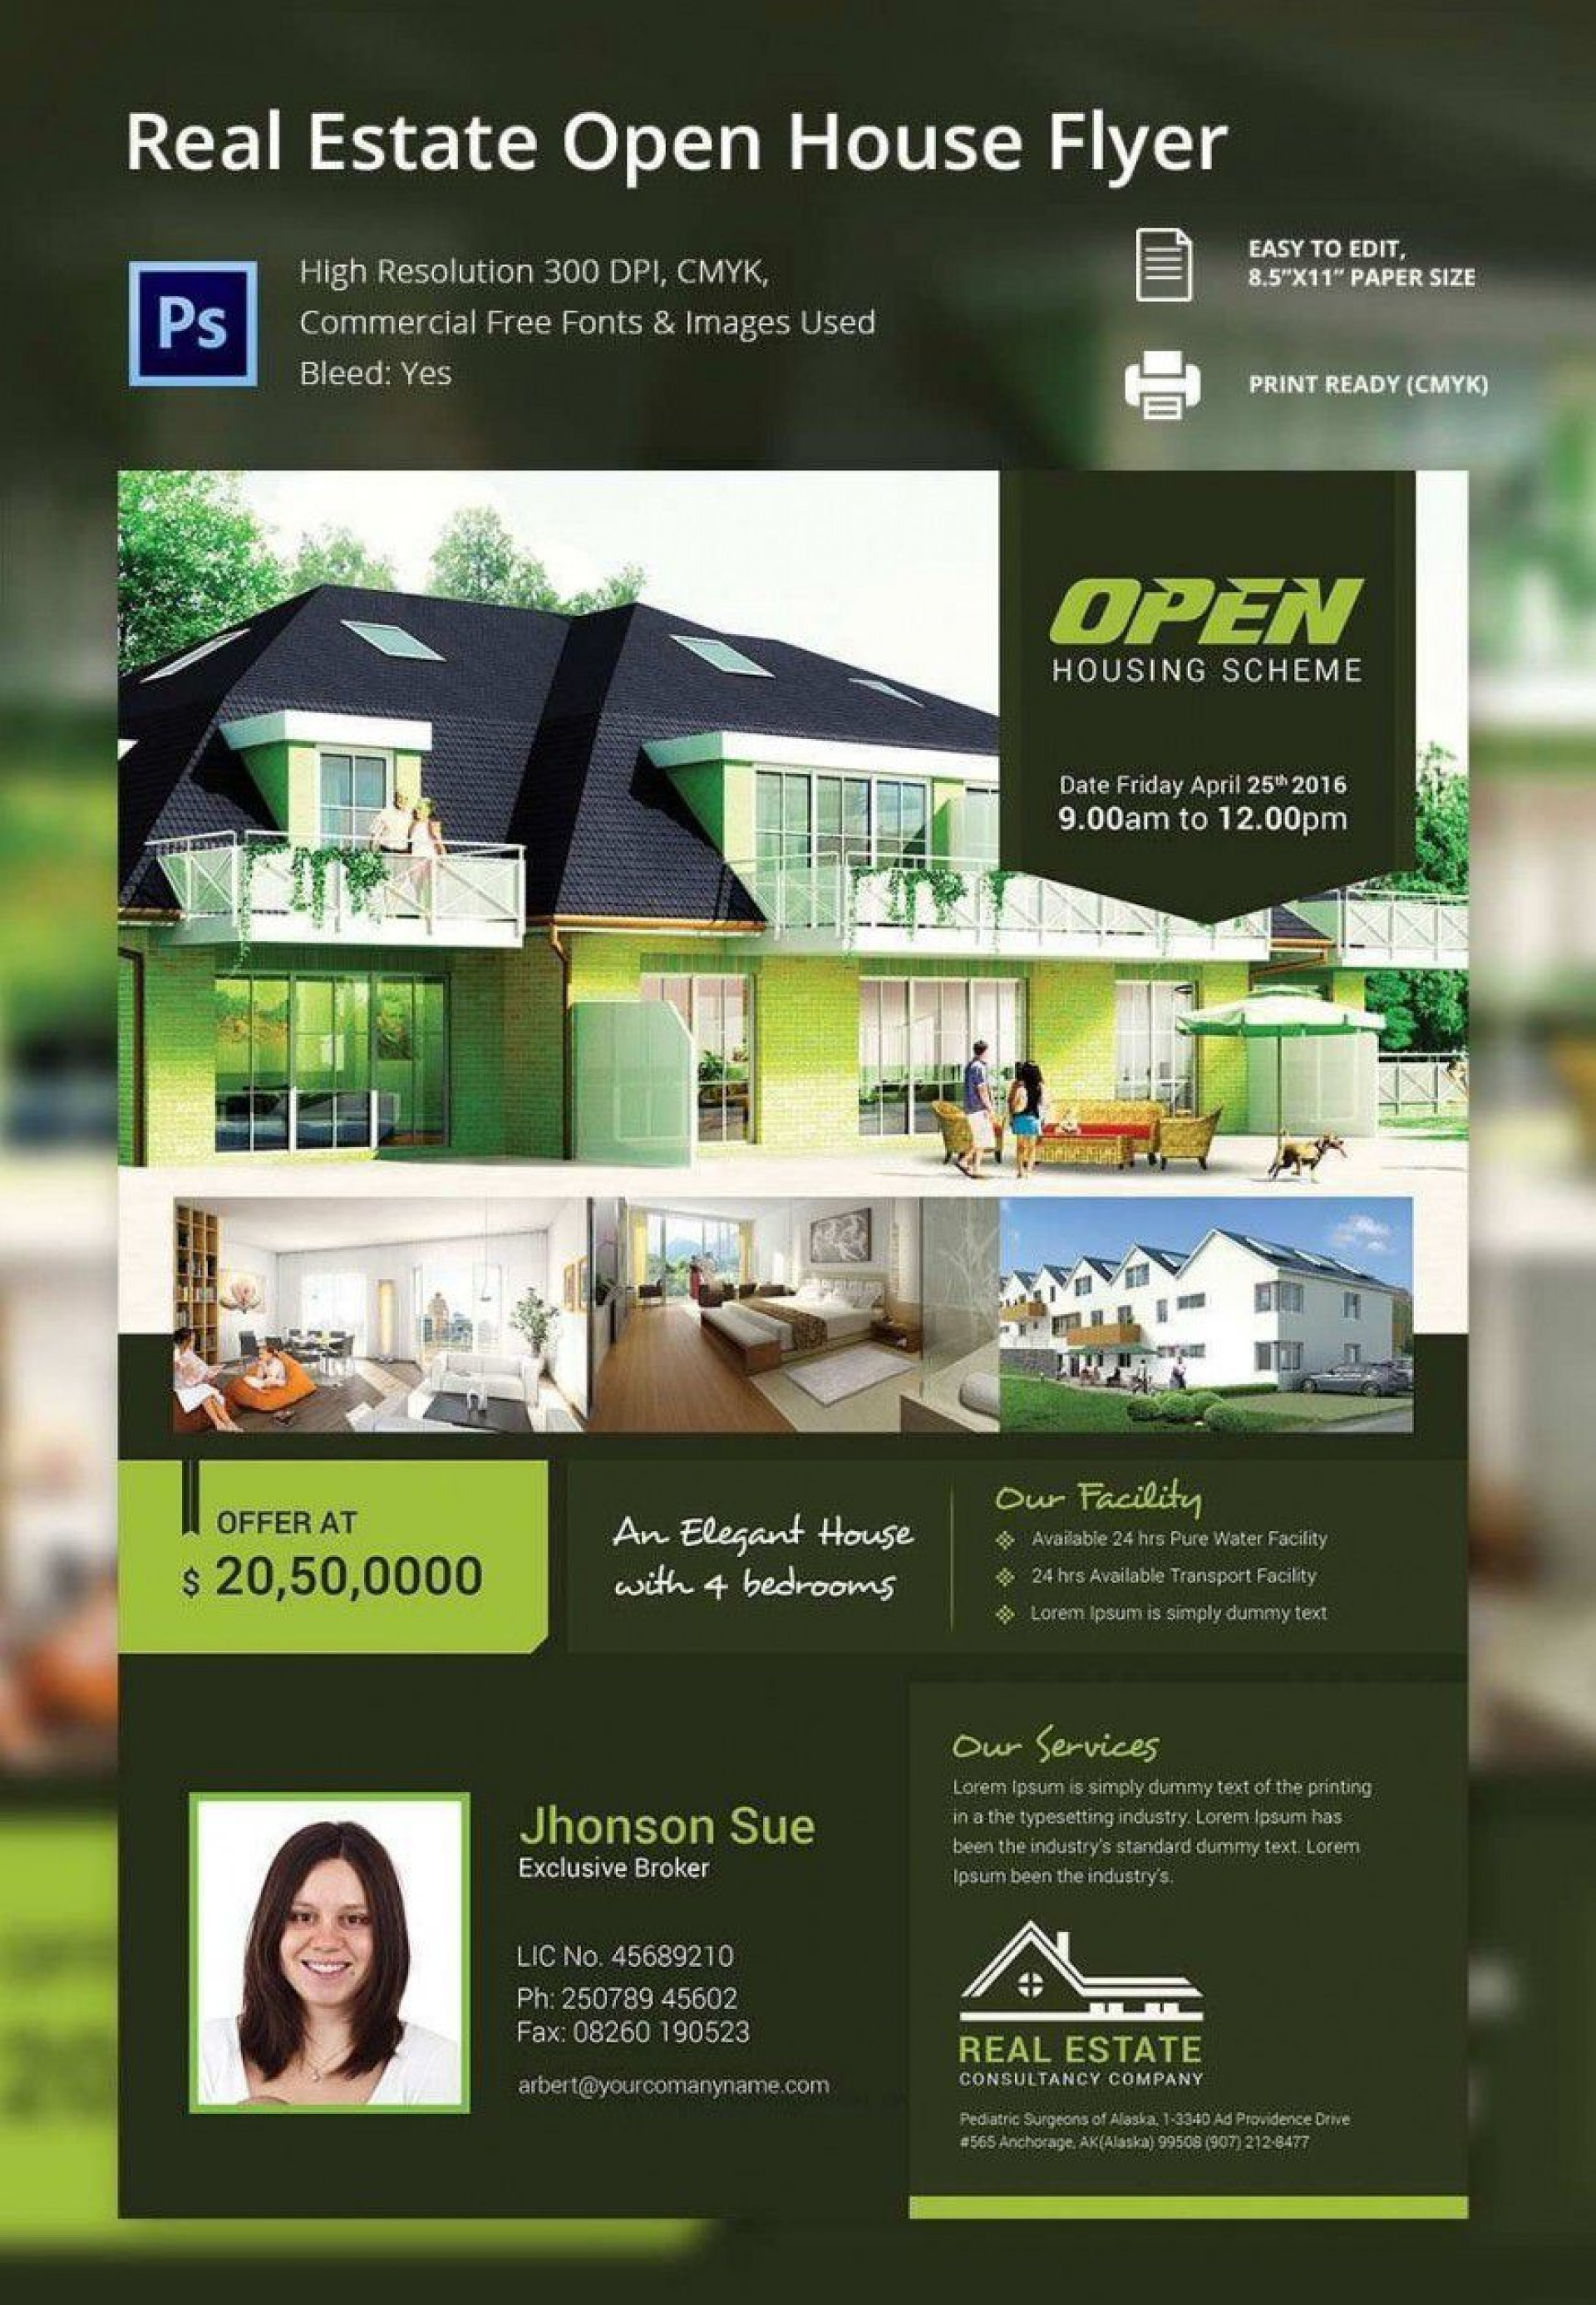 000 Beautiful Open House Flyer Template High Def  Templates Word Free School Microsoft1920